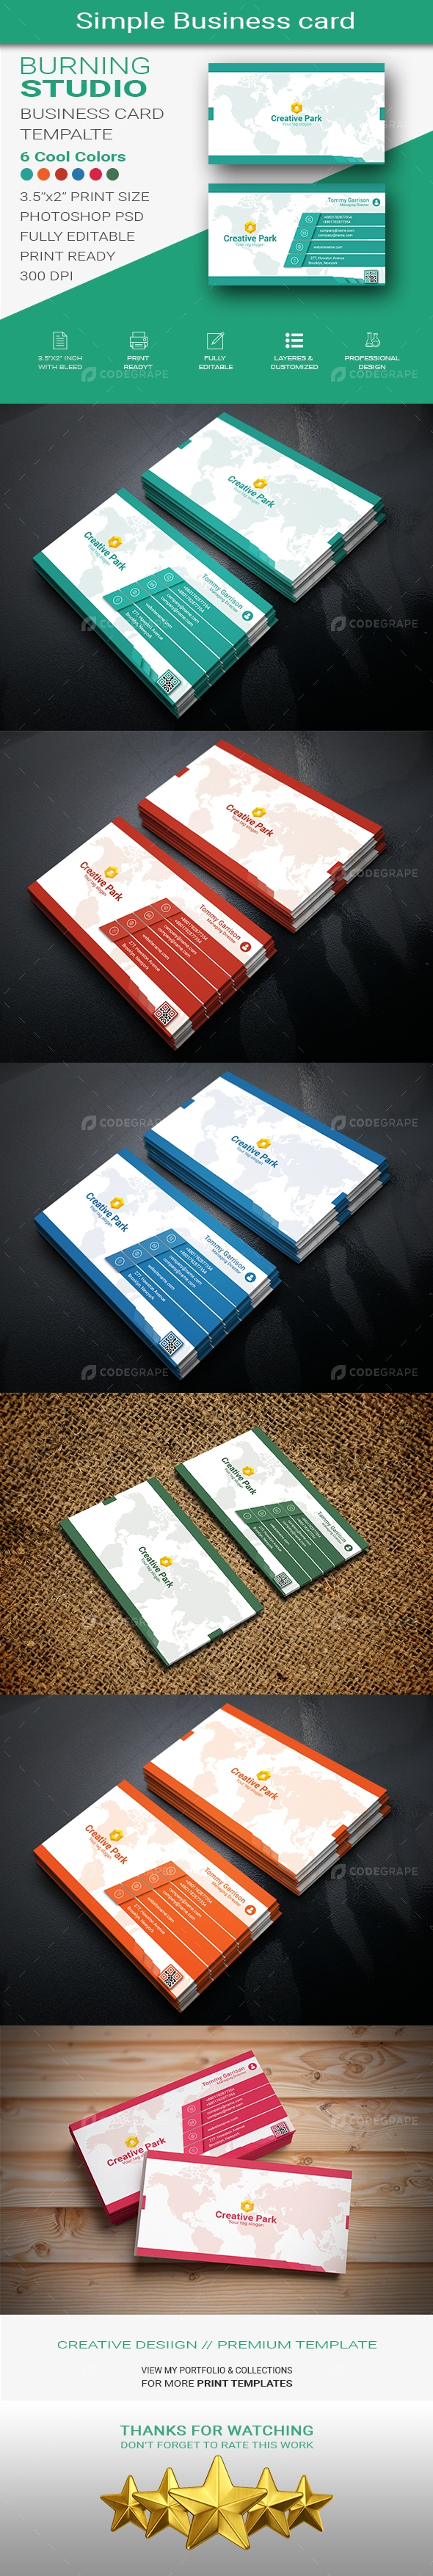 Simple Business Card Design Print